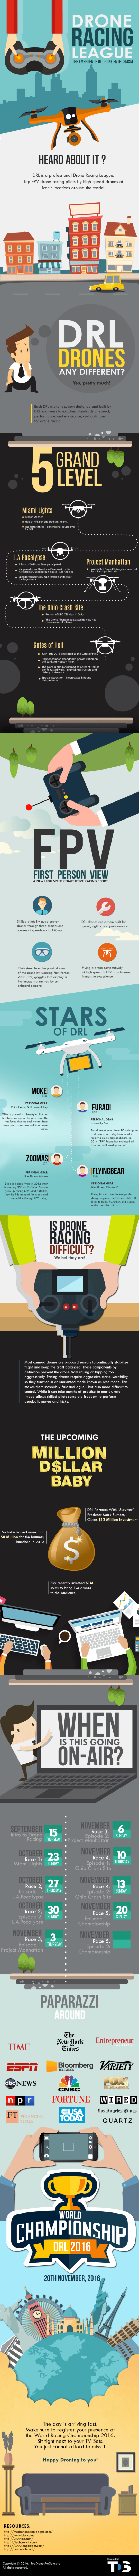 drone_racing_league_infographic